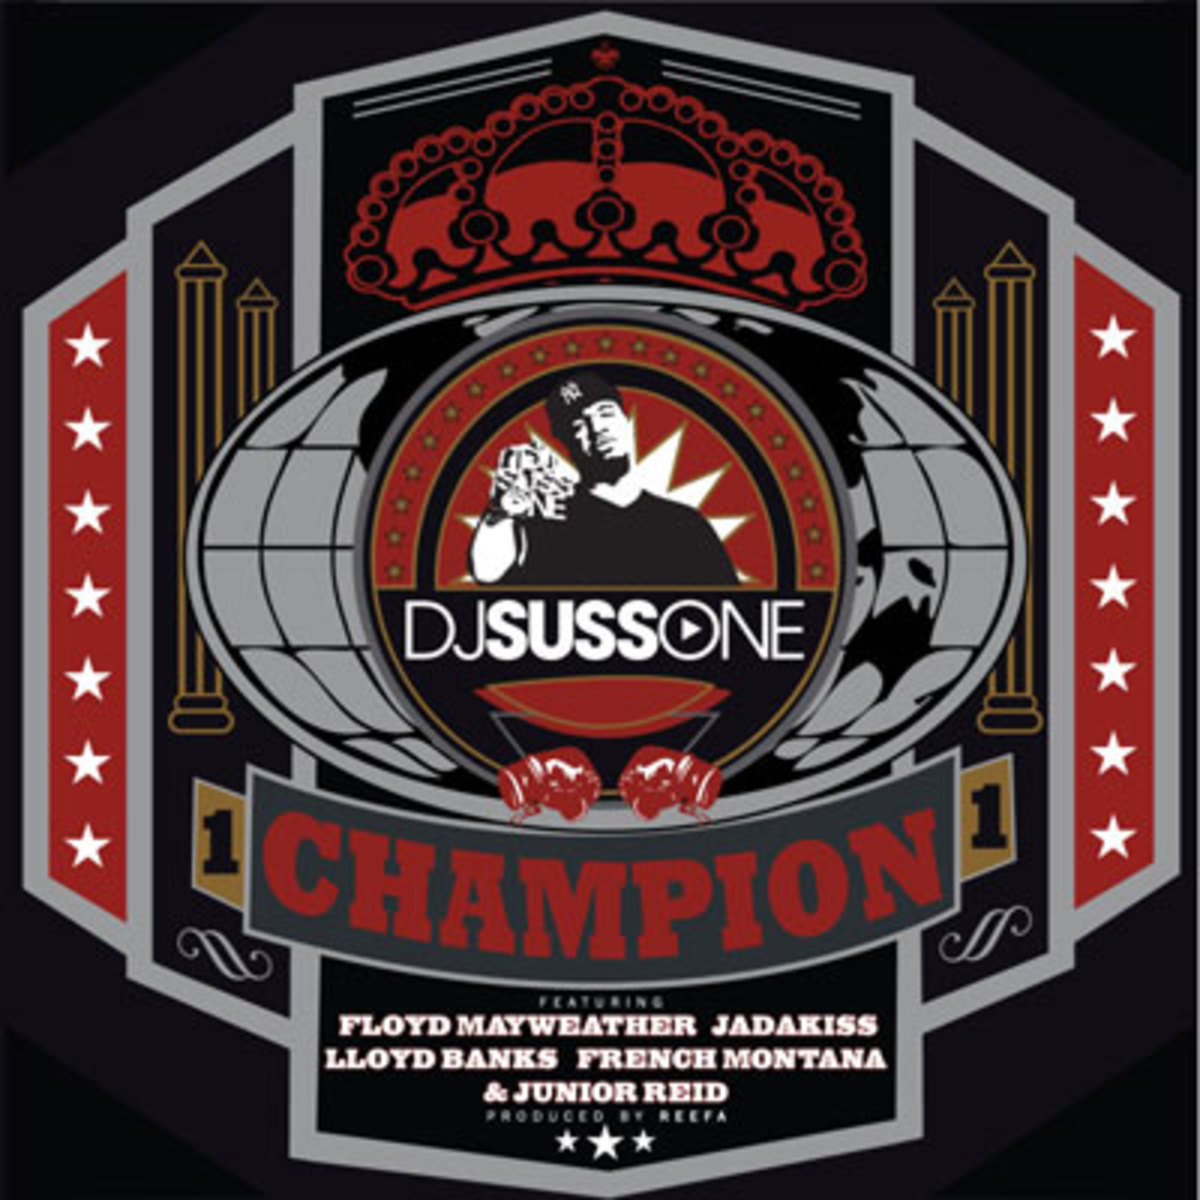 sussone-champion.jpg